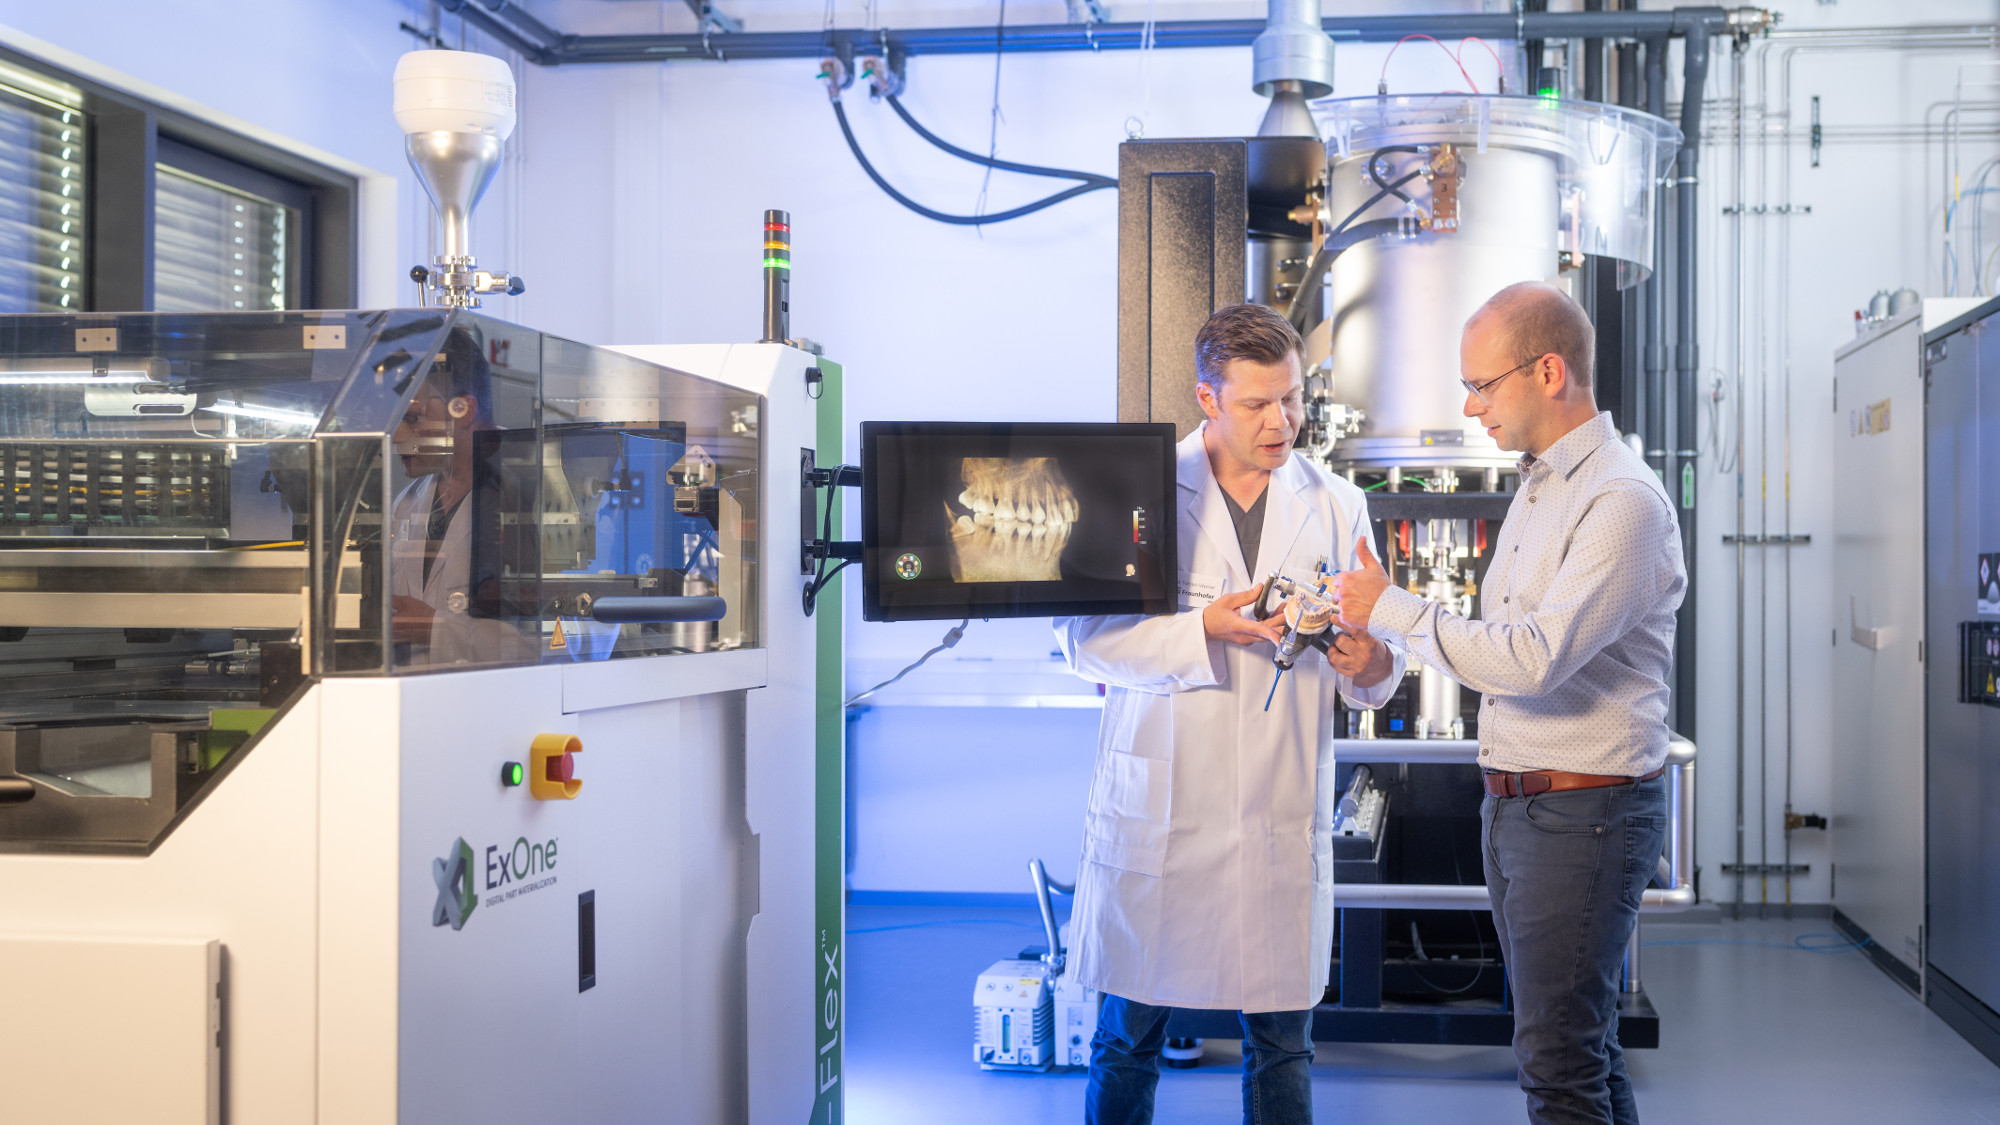 3D printing in dentistry: Fraunhofer bringing future technologies into the present